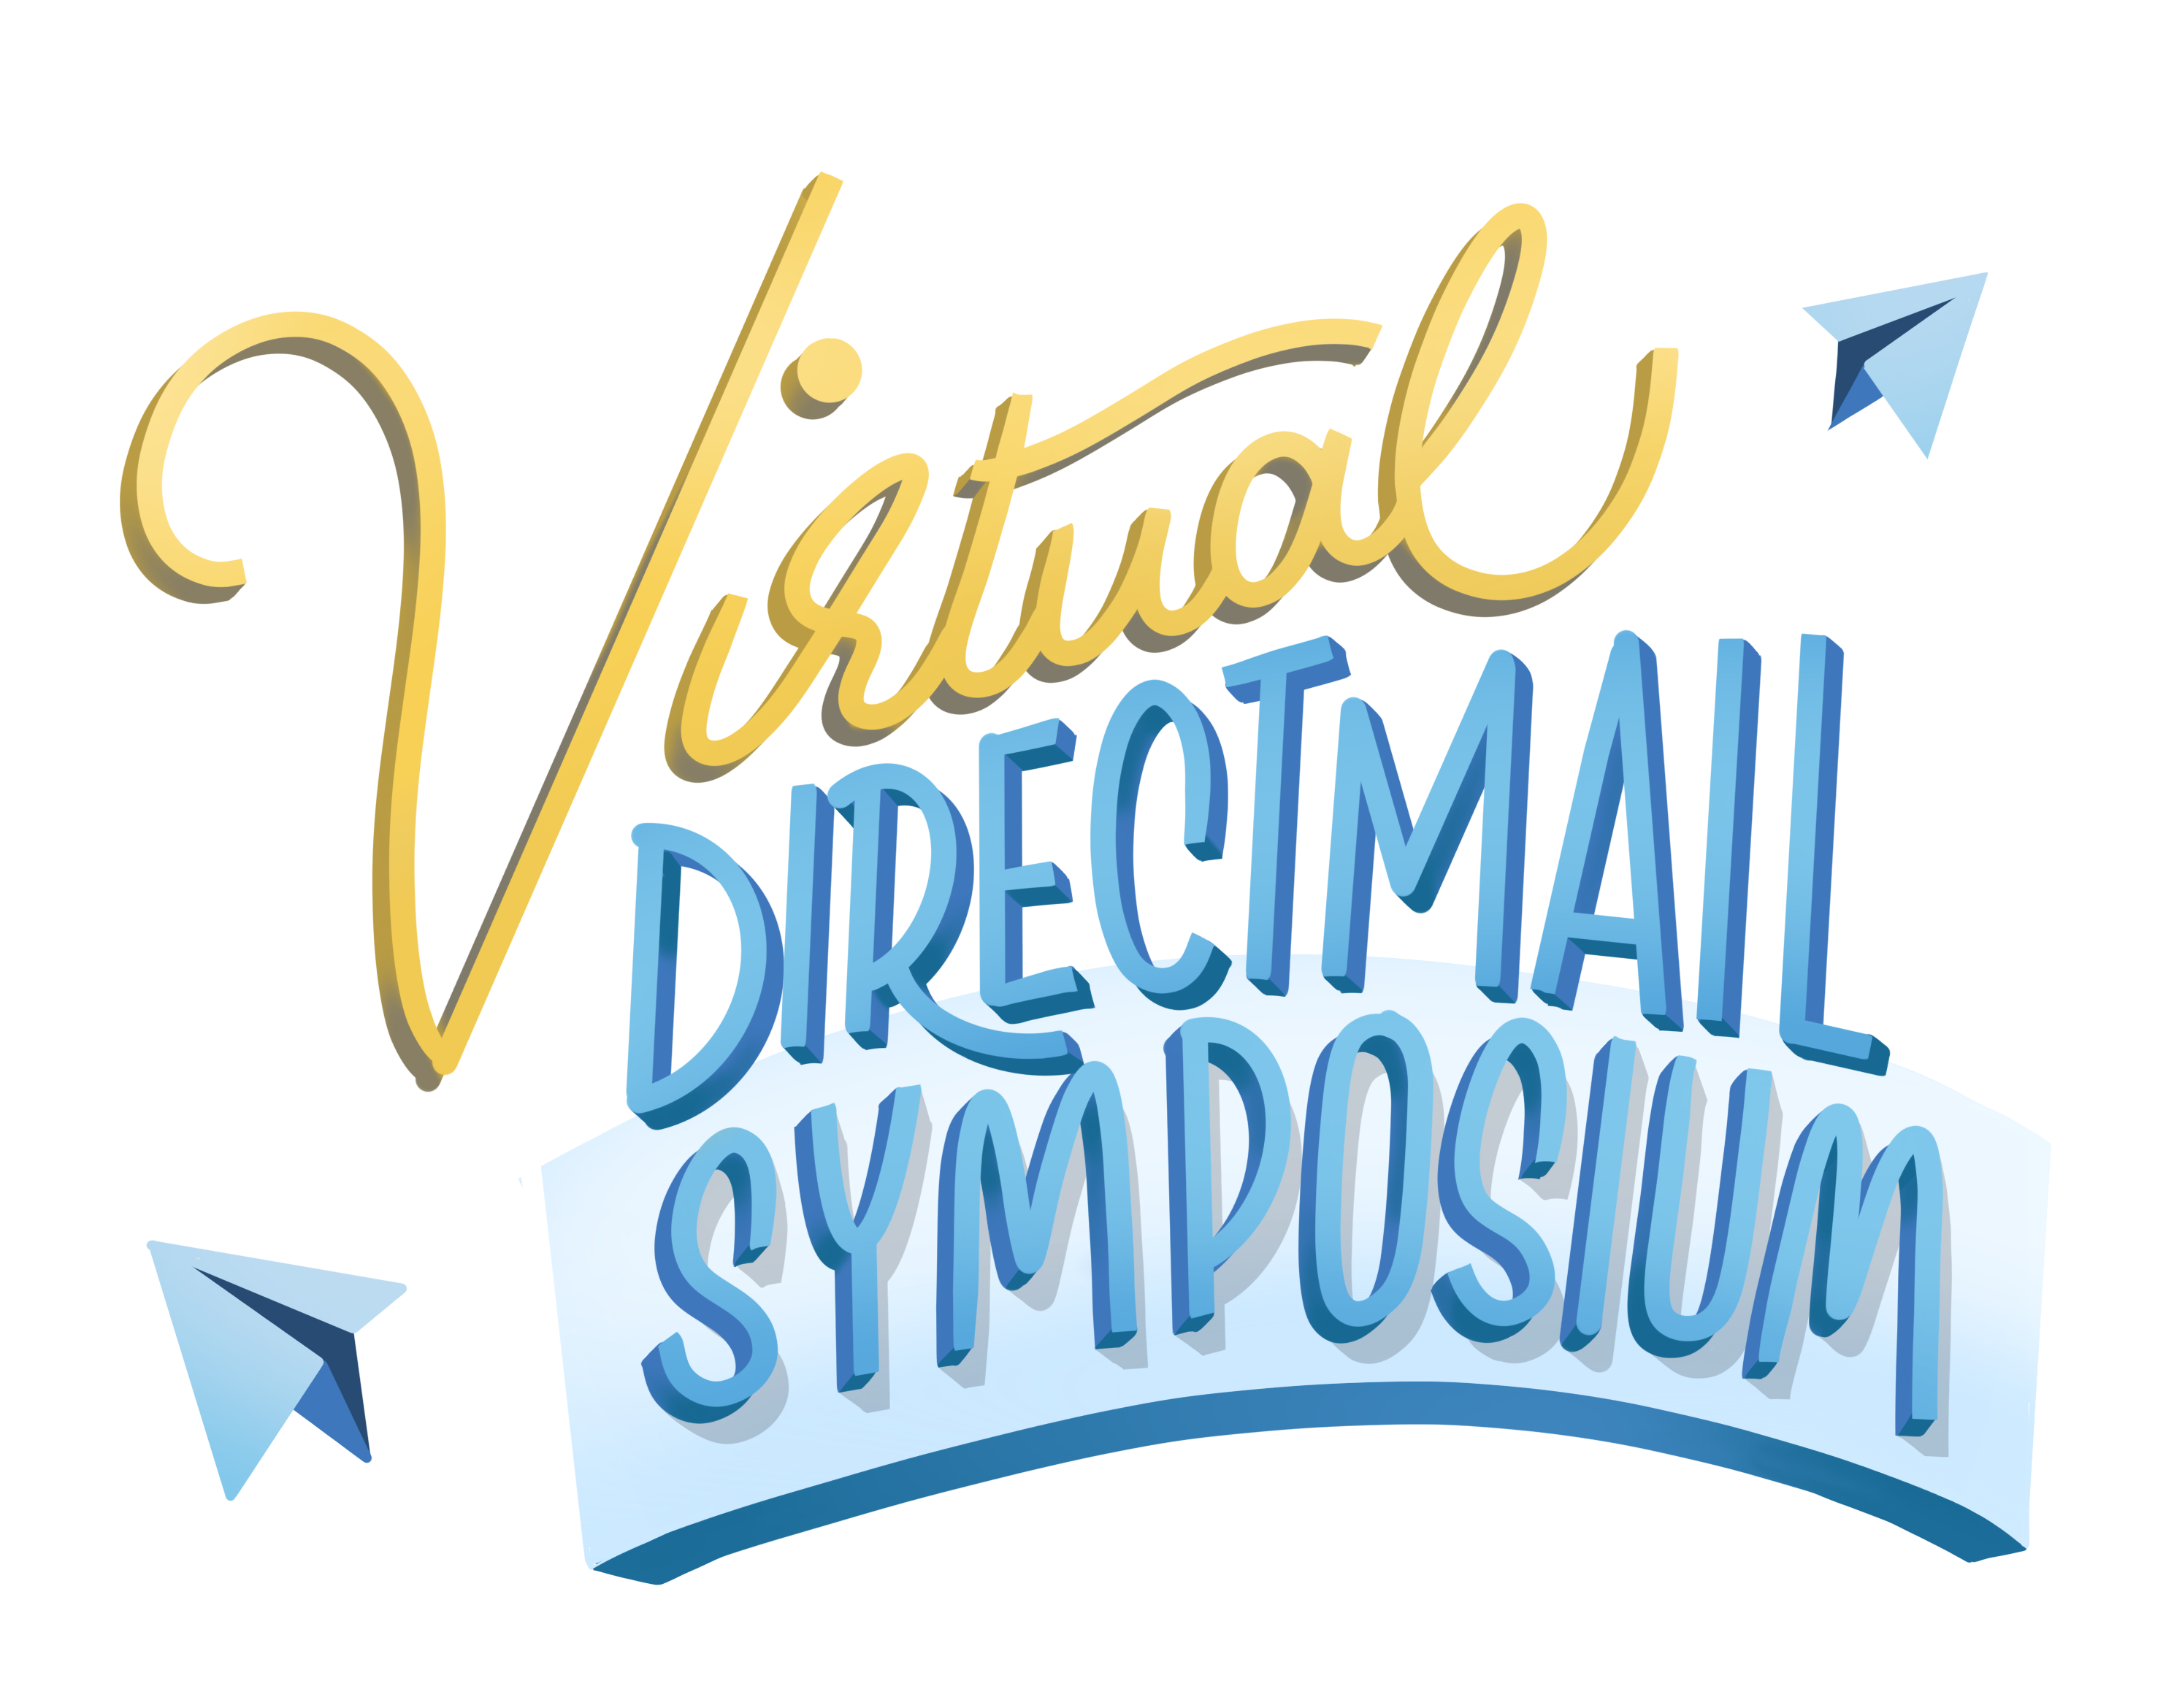 The Virtual Direct Mail Symposium